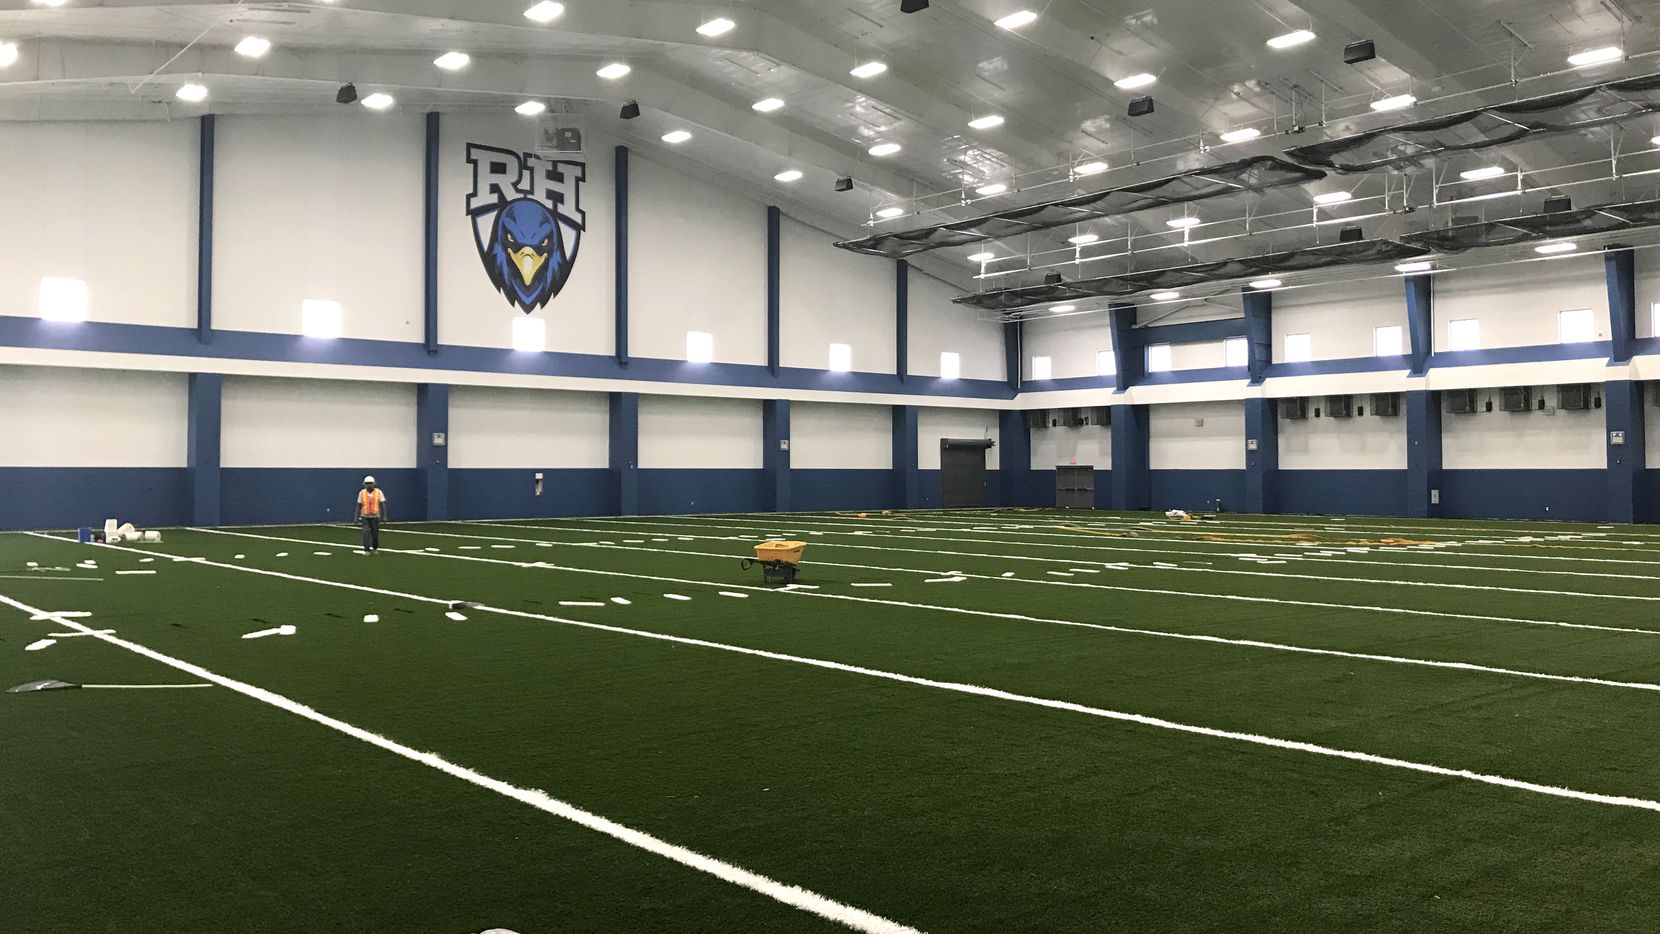 Prosper Rock Hill's football team will be playing its first year of varsity football when the school opens in fall, 2020. This photo shows an indoor practice field in the campus athletic facilities which were under construction in March 2020.